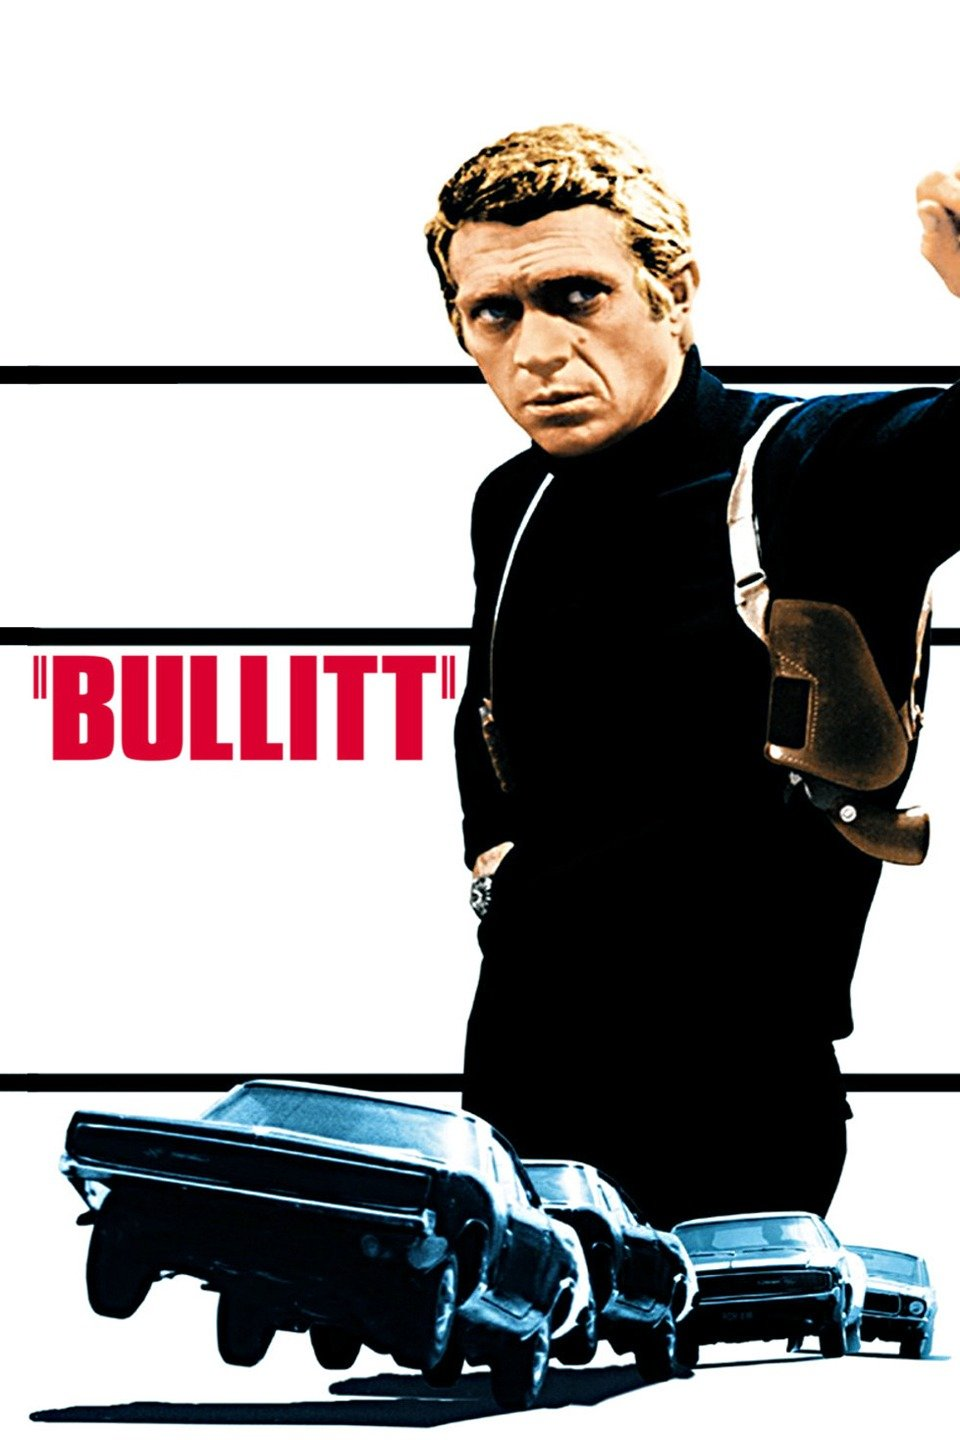 — BULLITT   Senator Walter Chalmers (Robert Vaughn) is aiming to take down mob boss Pete Ross (Vic Tayback) with the help of testimony from the criminal's hothead brother Johnny (Pat Renella), who is in protective custody in San Francisco under the watch of police lieutenant Frank Bullitt (Steve McQueen). When a pair of mob hitmen enter the scene, Bullitt follows their trail through a maze of complications and double-crosses. This thriller includes one of the most famous car chases ever filmed.